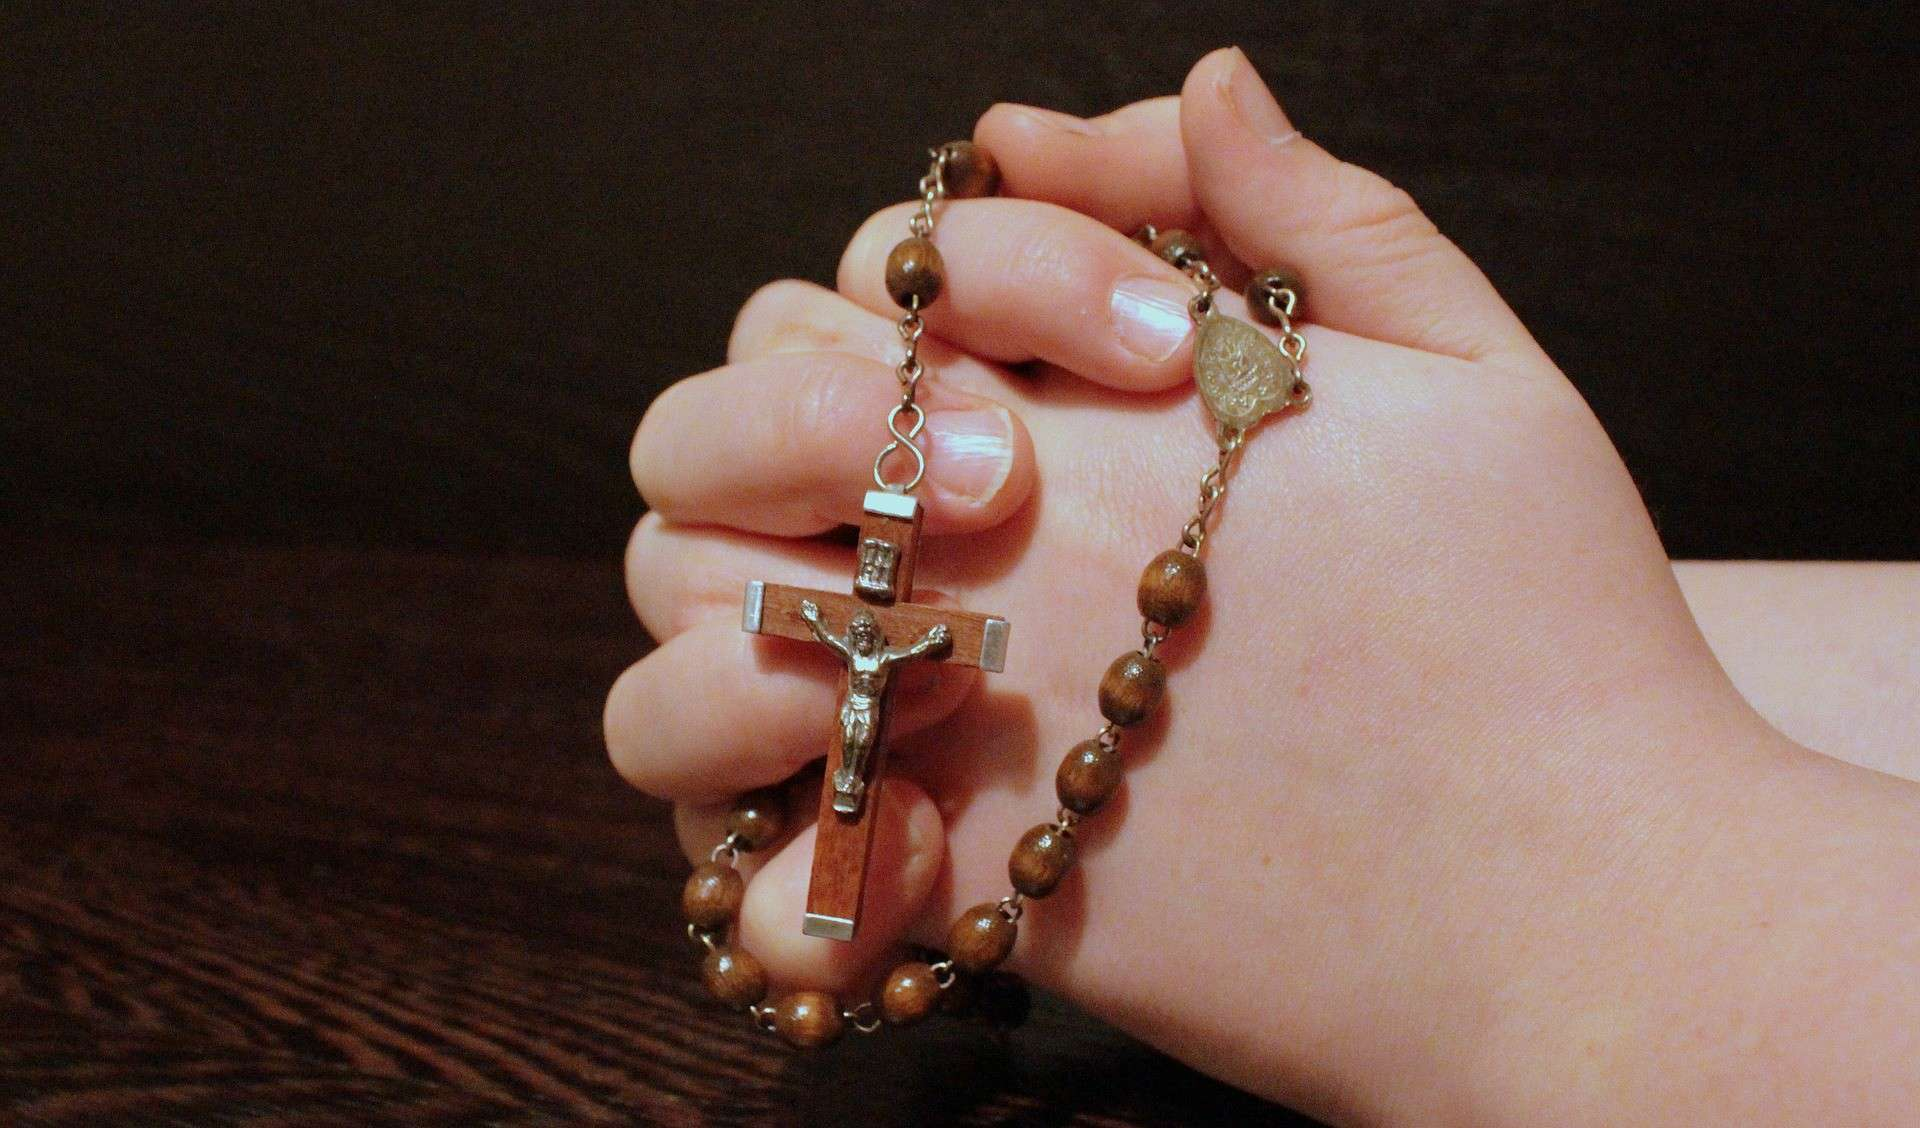 Folded hands holding a rosary